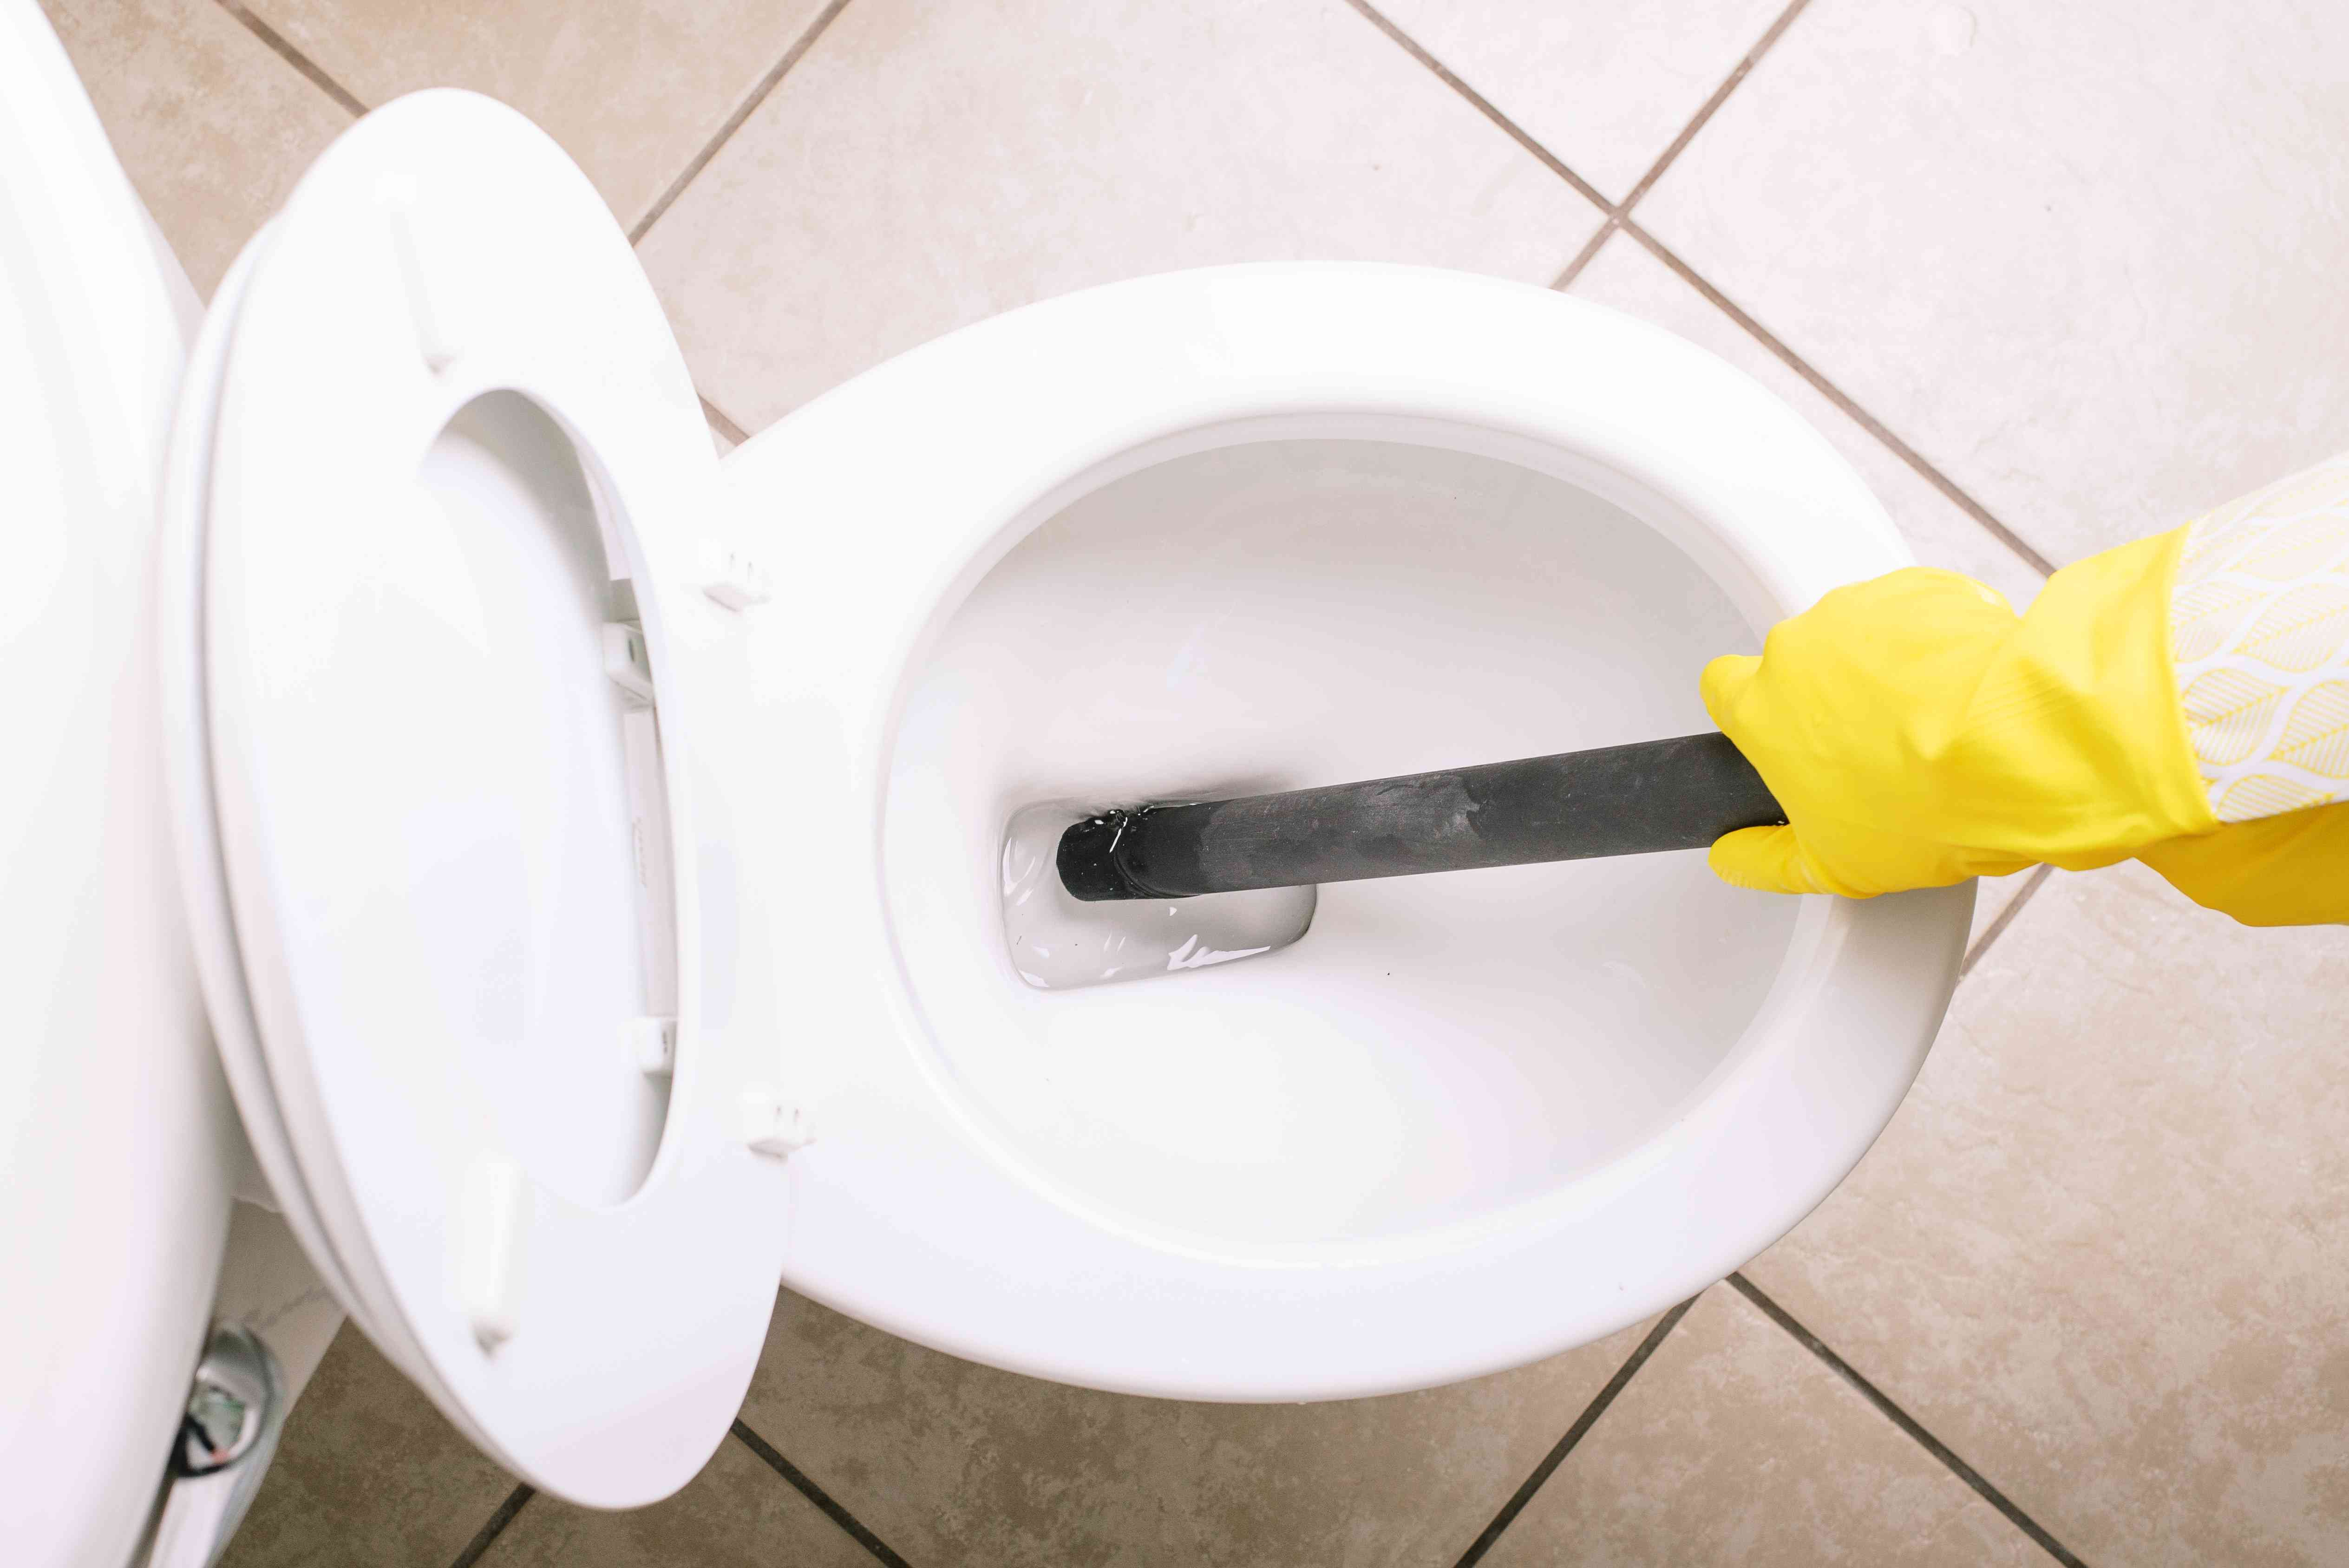 Wet-dry vacuum hose sucking up water to drain white ceramic toilet with yellow gloves